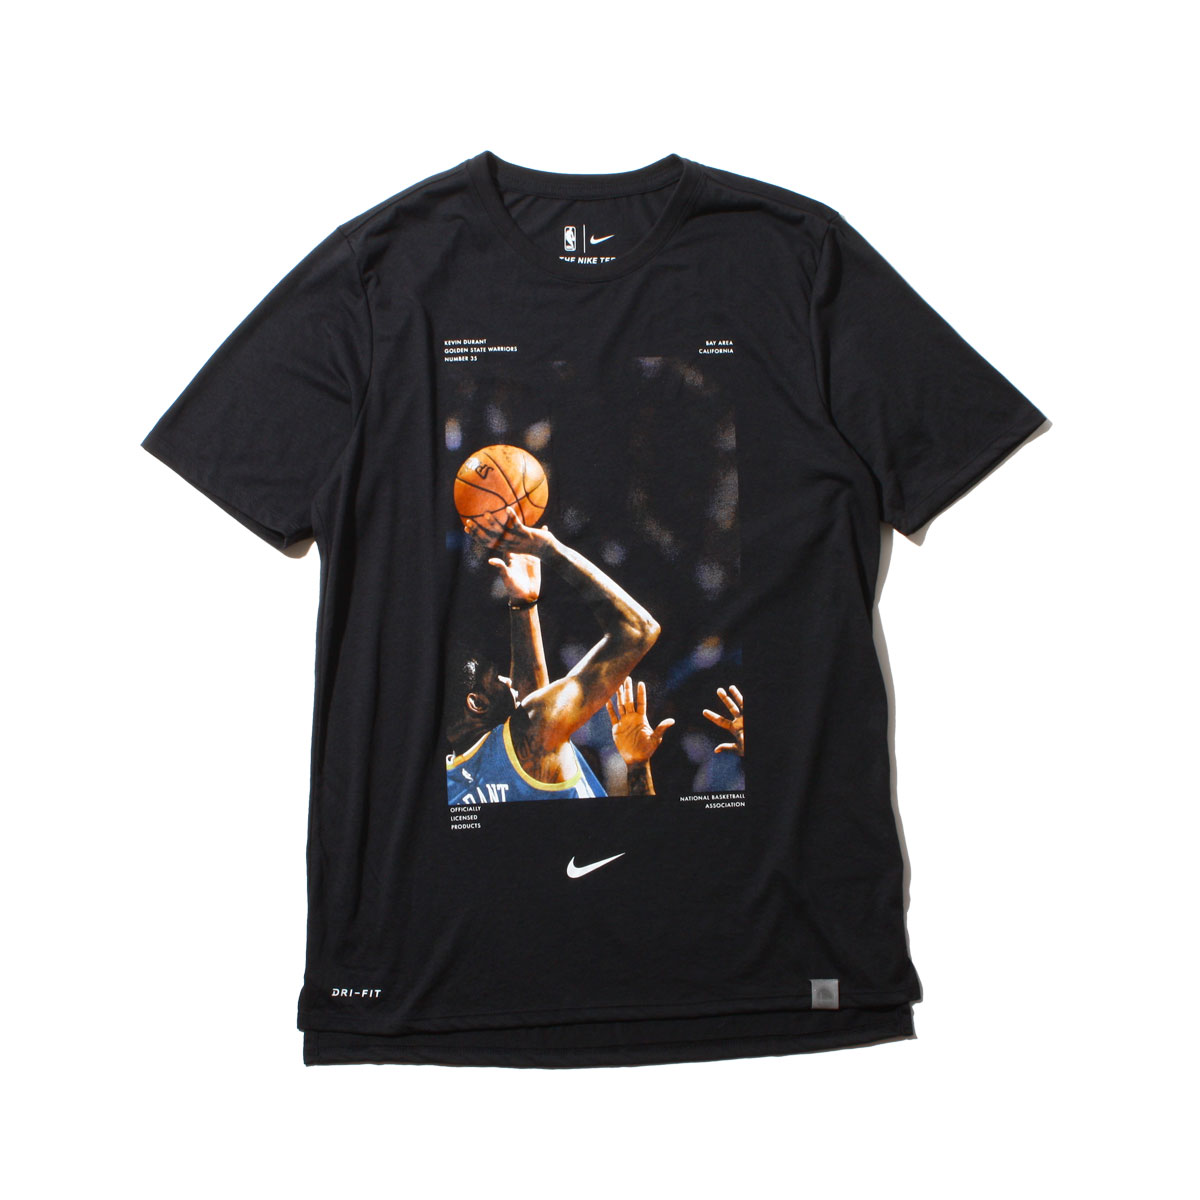 NIKE AS NBA M NK DRY TEE PPACK 5 (ナイキ NBA PPACK S/S Tシャツ ケヴィン・デュラント) BLACK【メンズ Tシャツ】18SP-S